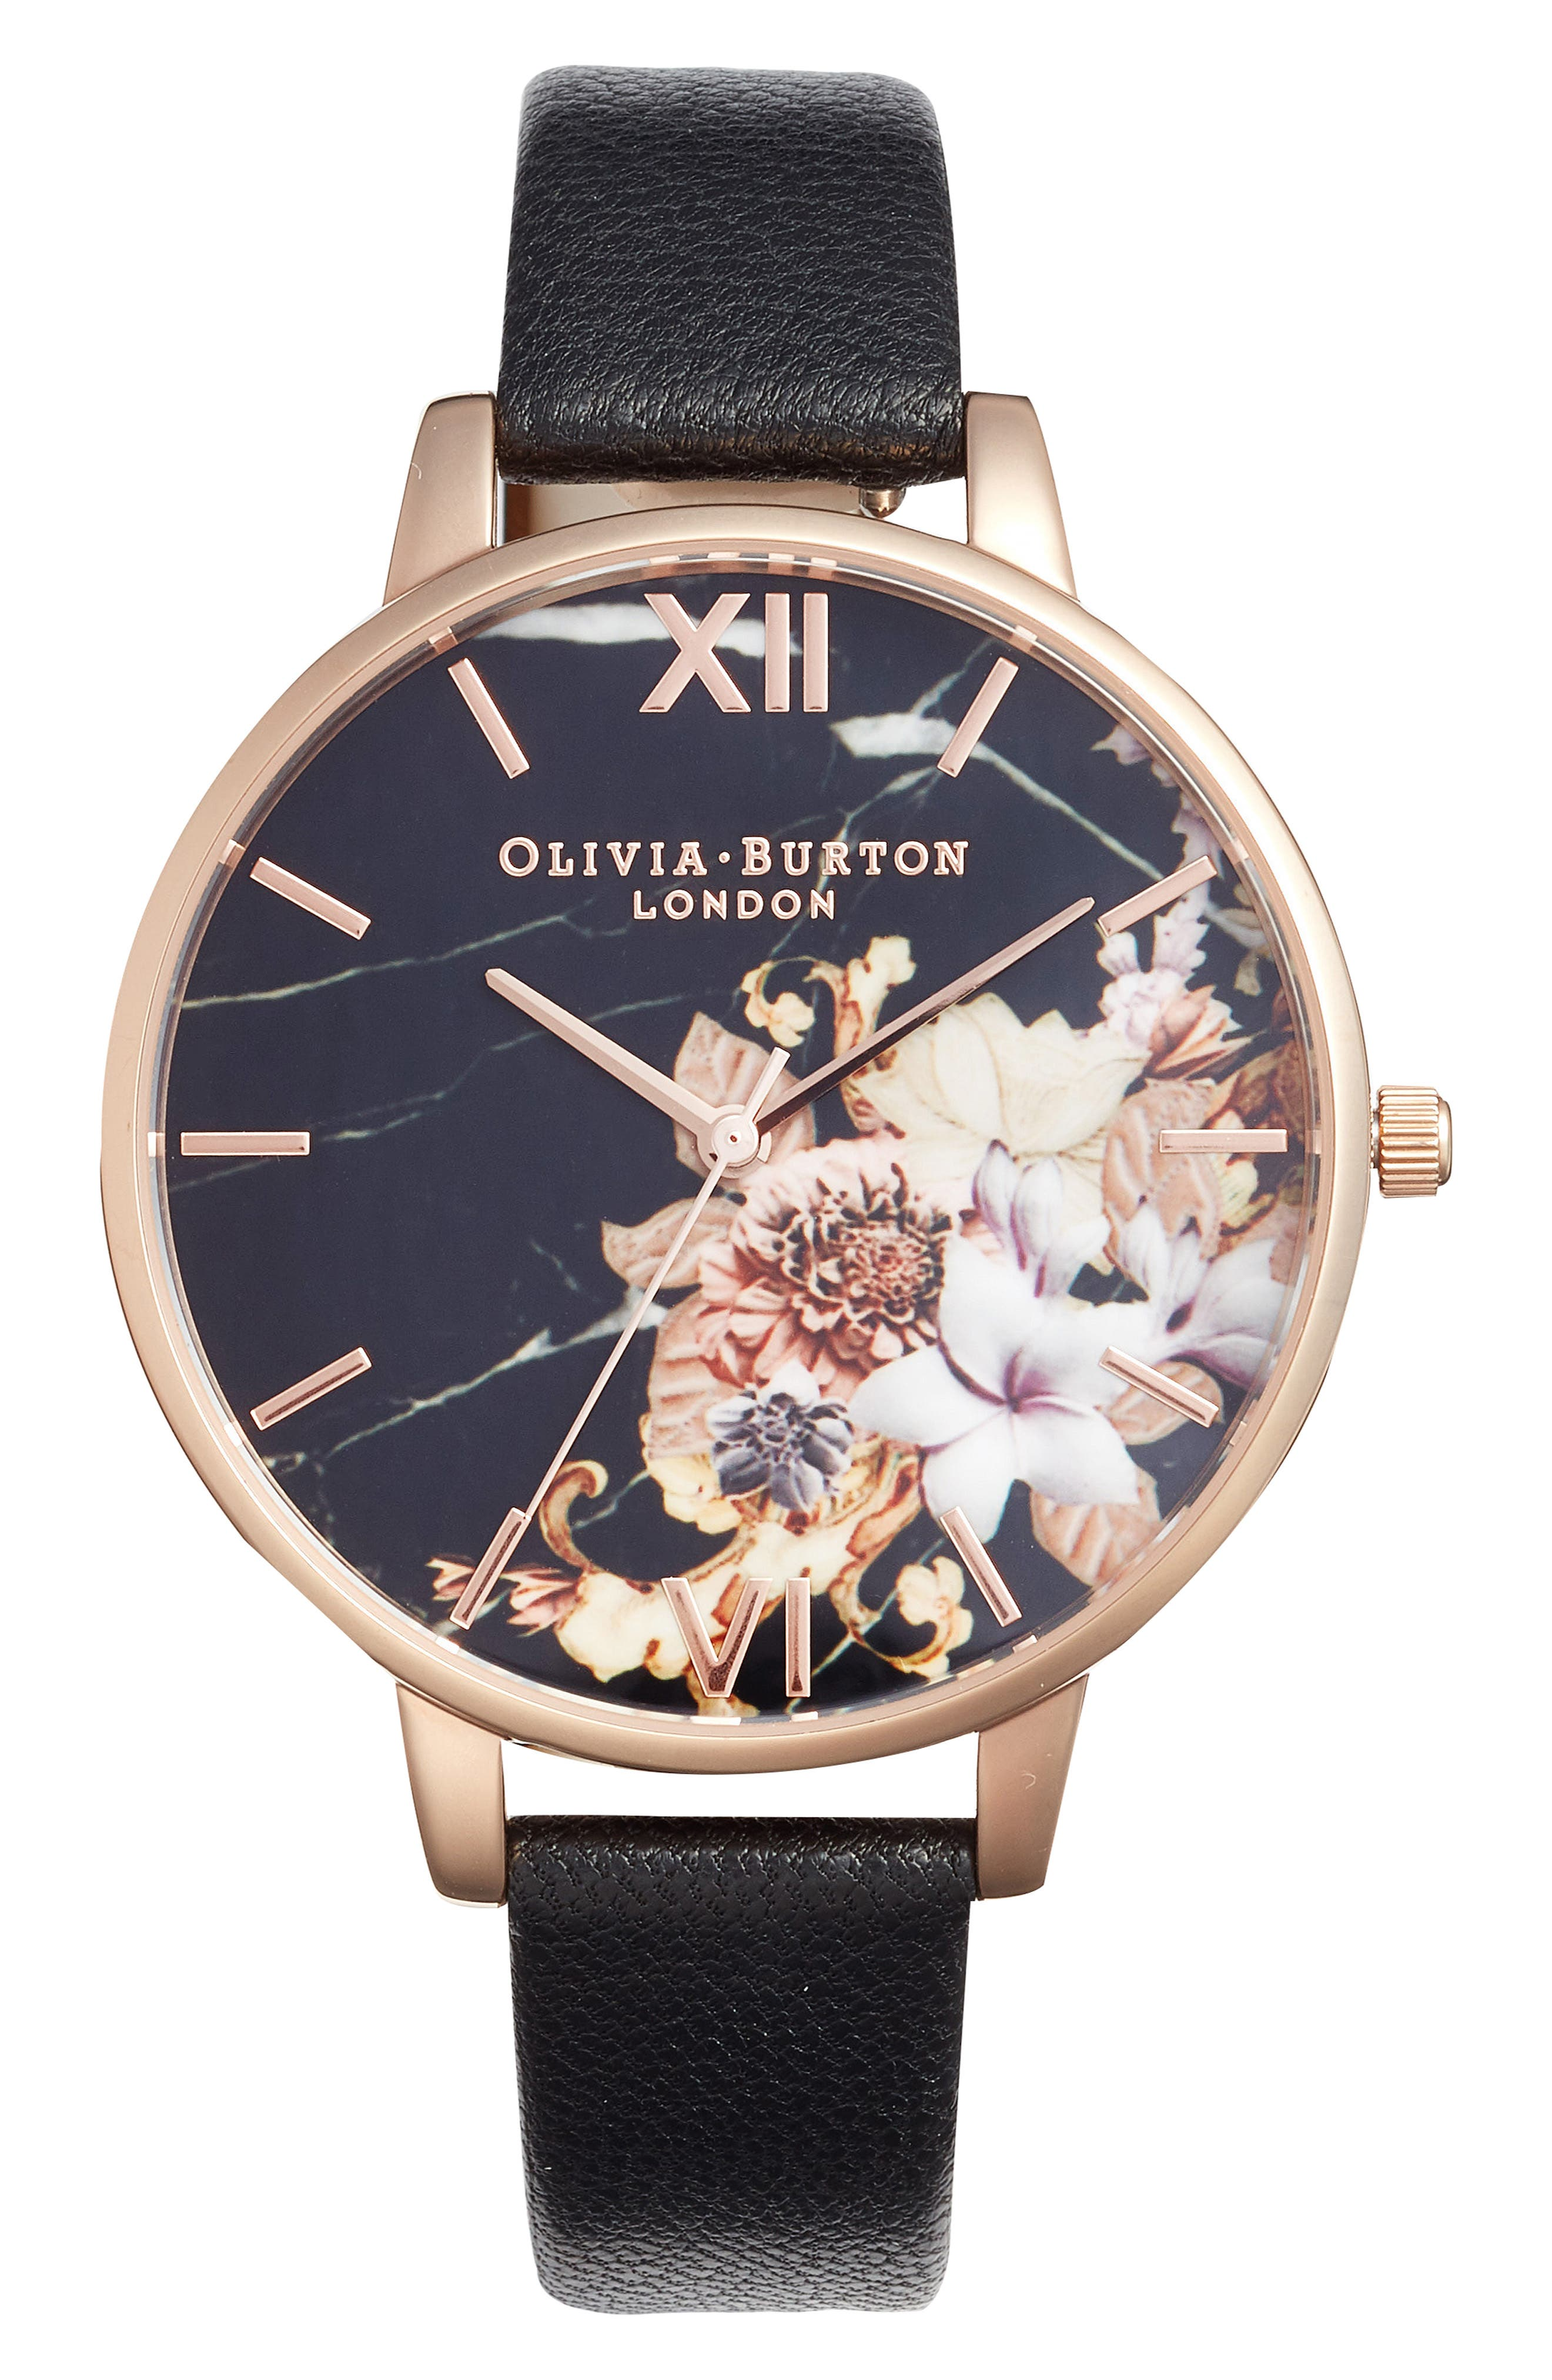 Olivia Burton Marble Floral Leather Strap Watch, 38mm. Alchemy Gothic Necklace. Rustic Rings. Gps Tracker Bracelet. Cute Beads. Rustic Wedding Rings. Classic Black Watches. Healing Bracelet. Cape Diamond